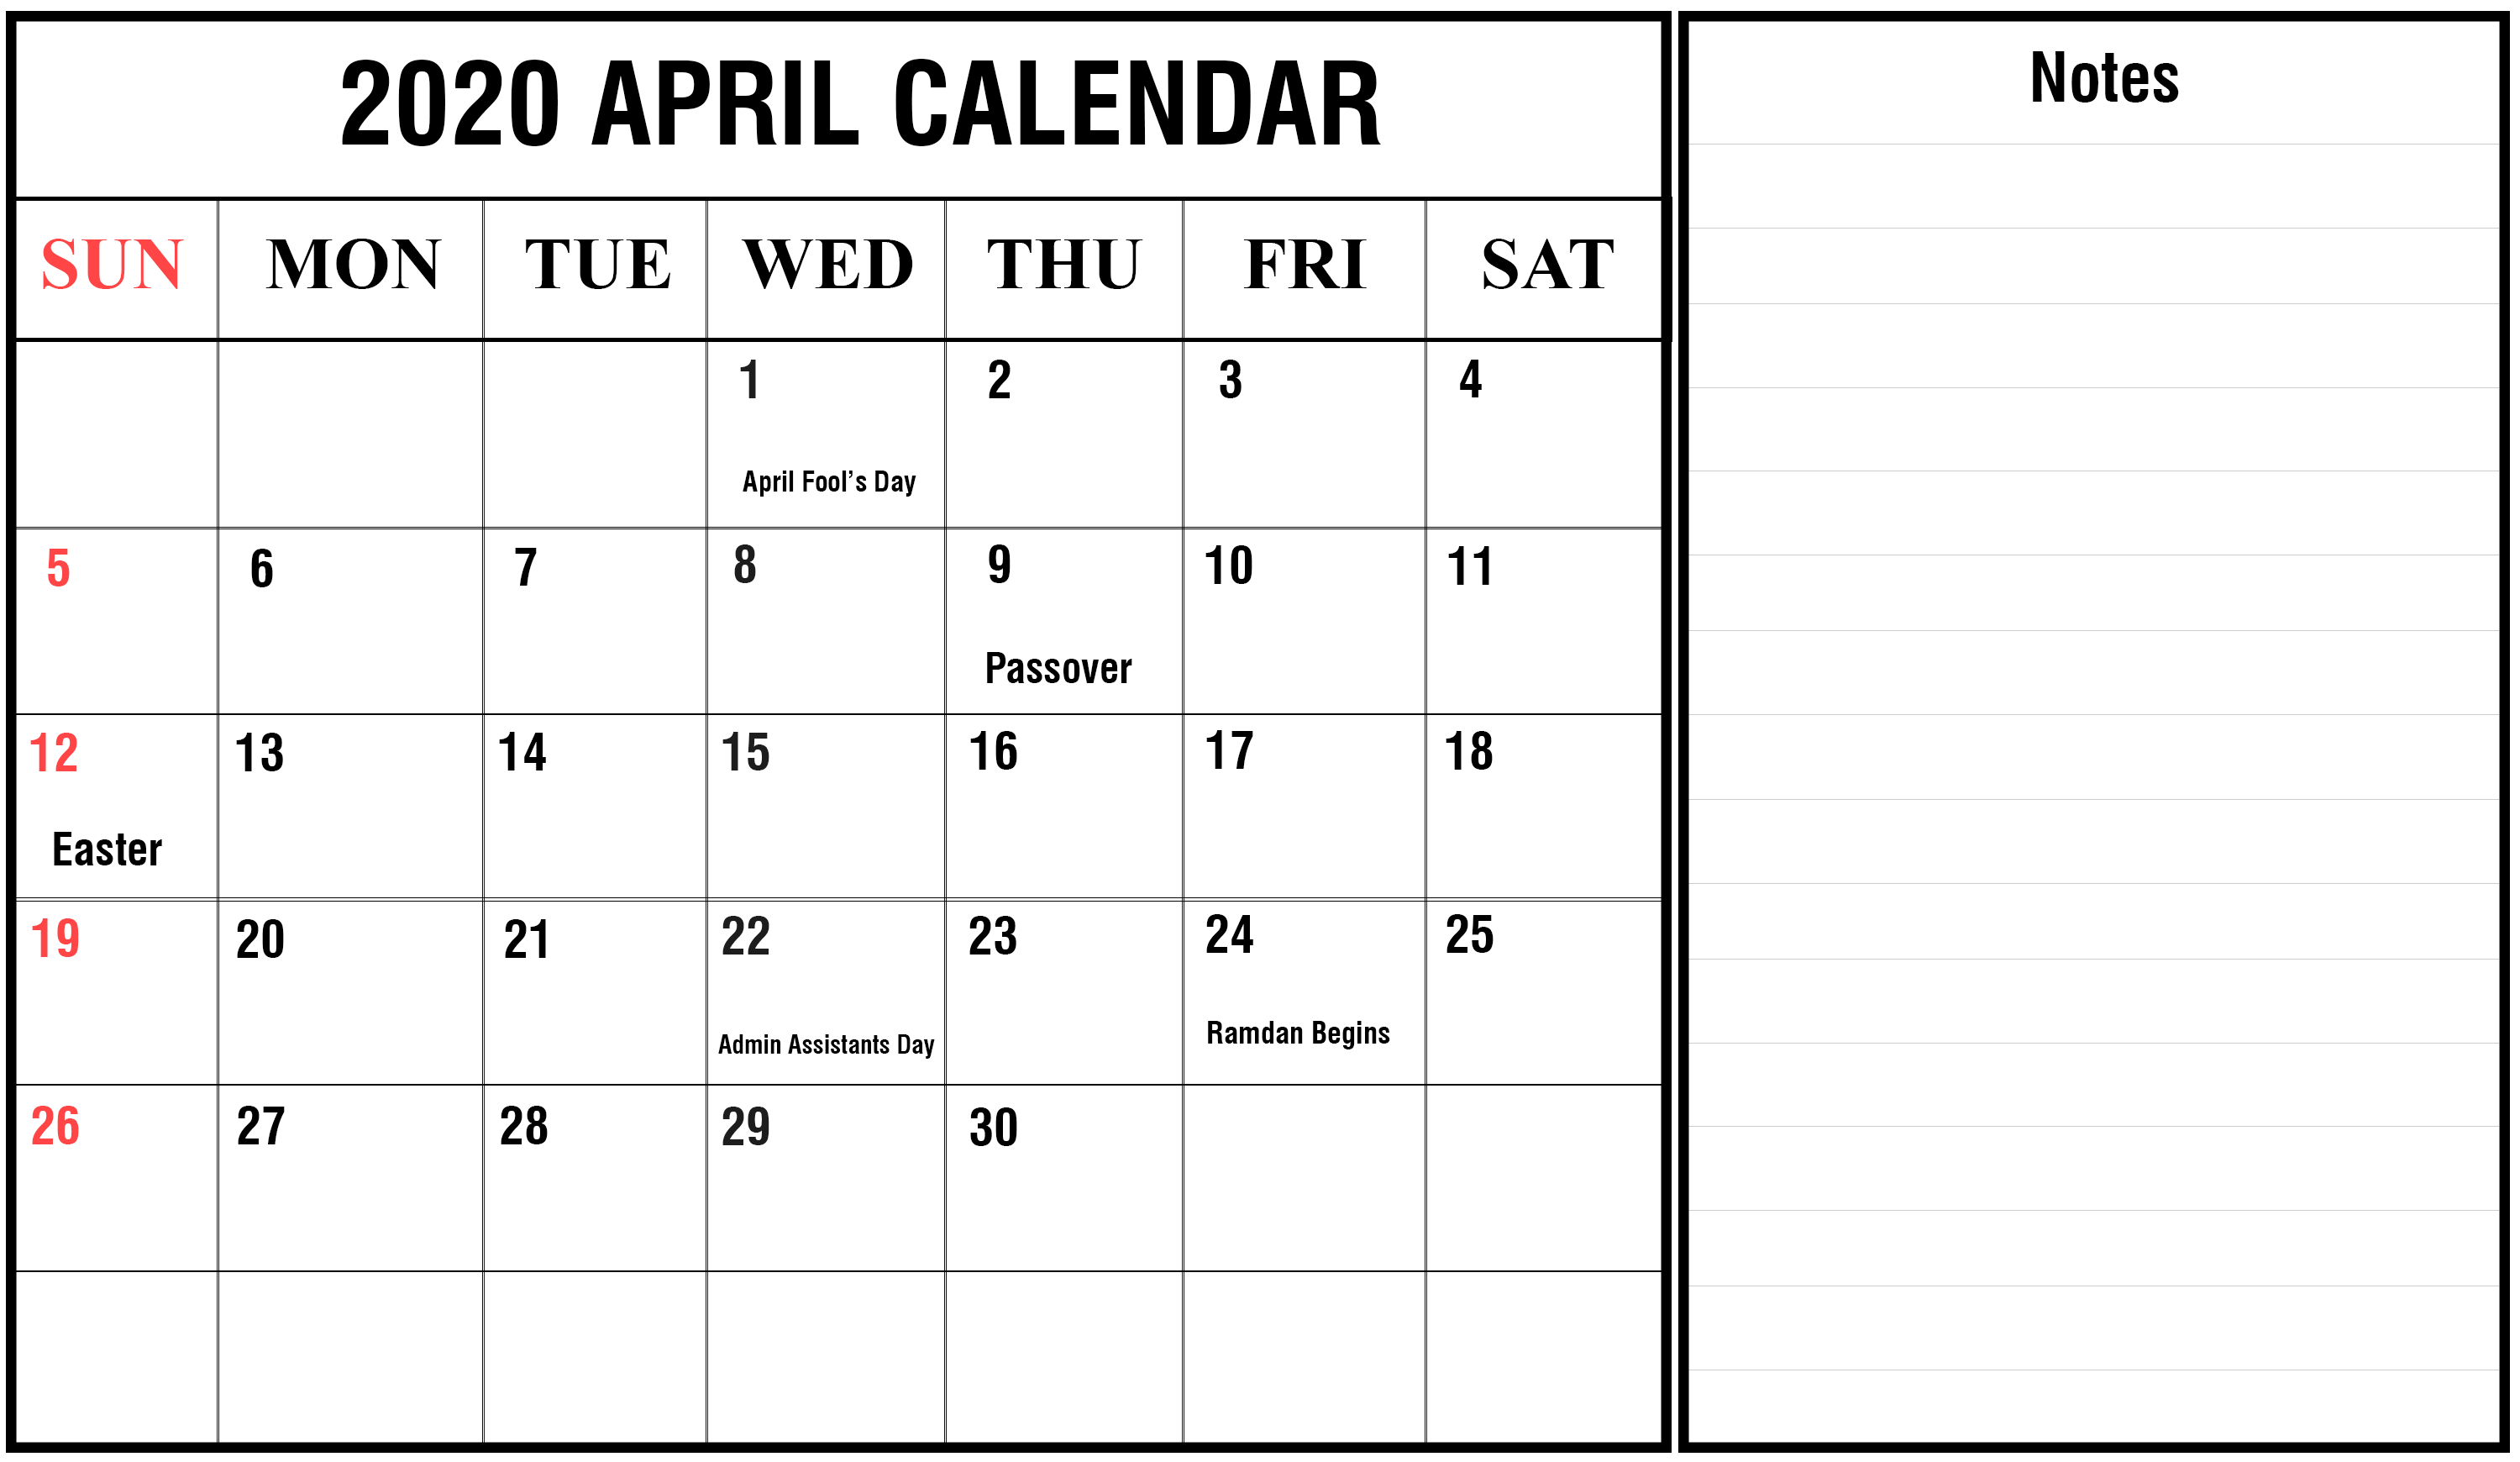 Editable April 2020 Calendar with Notes